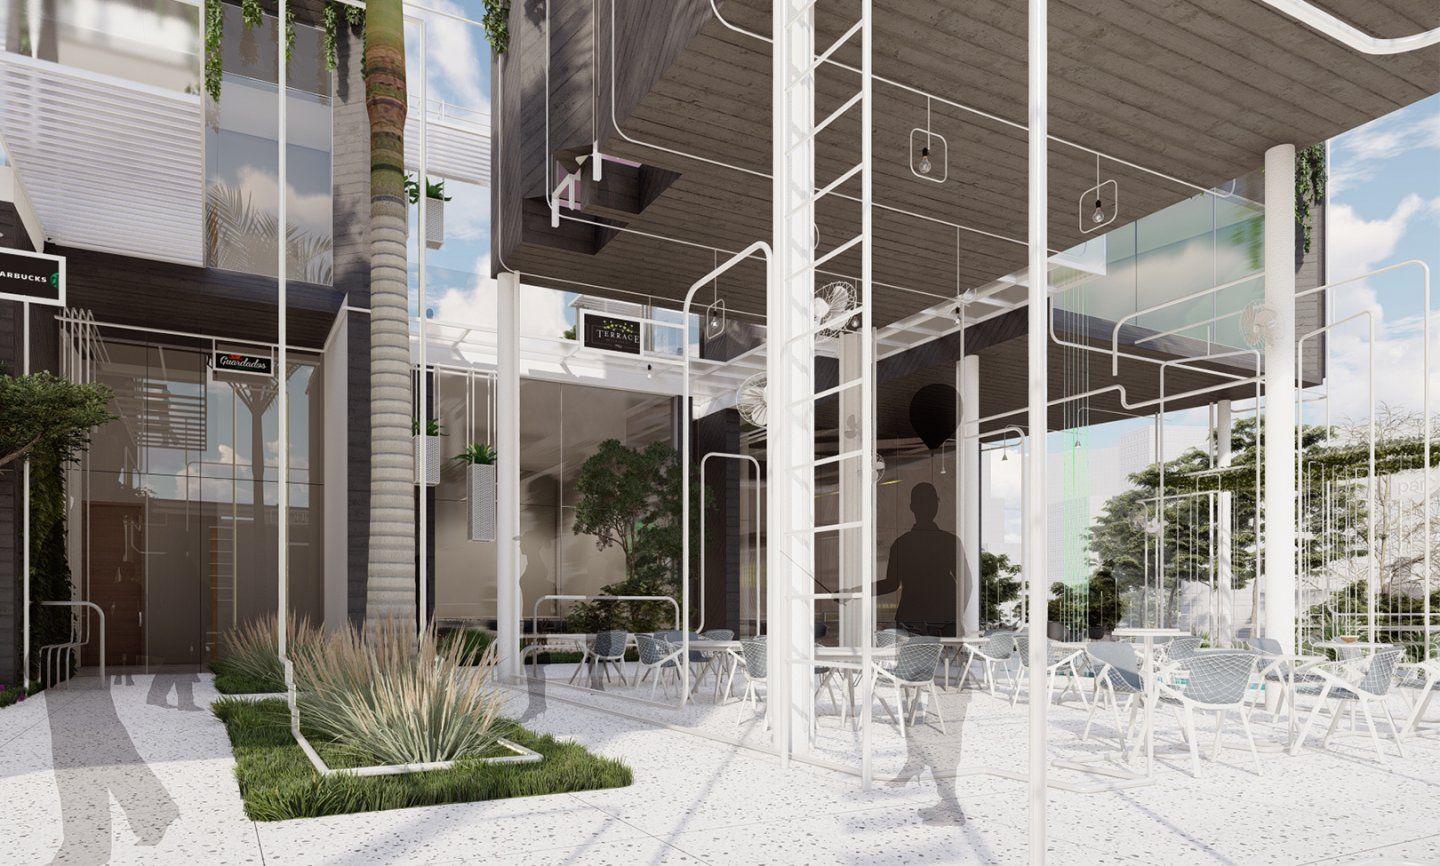 ACHRAFIEH 5546 2 - project overview image